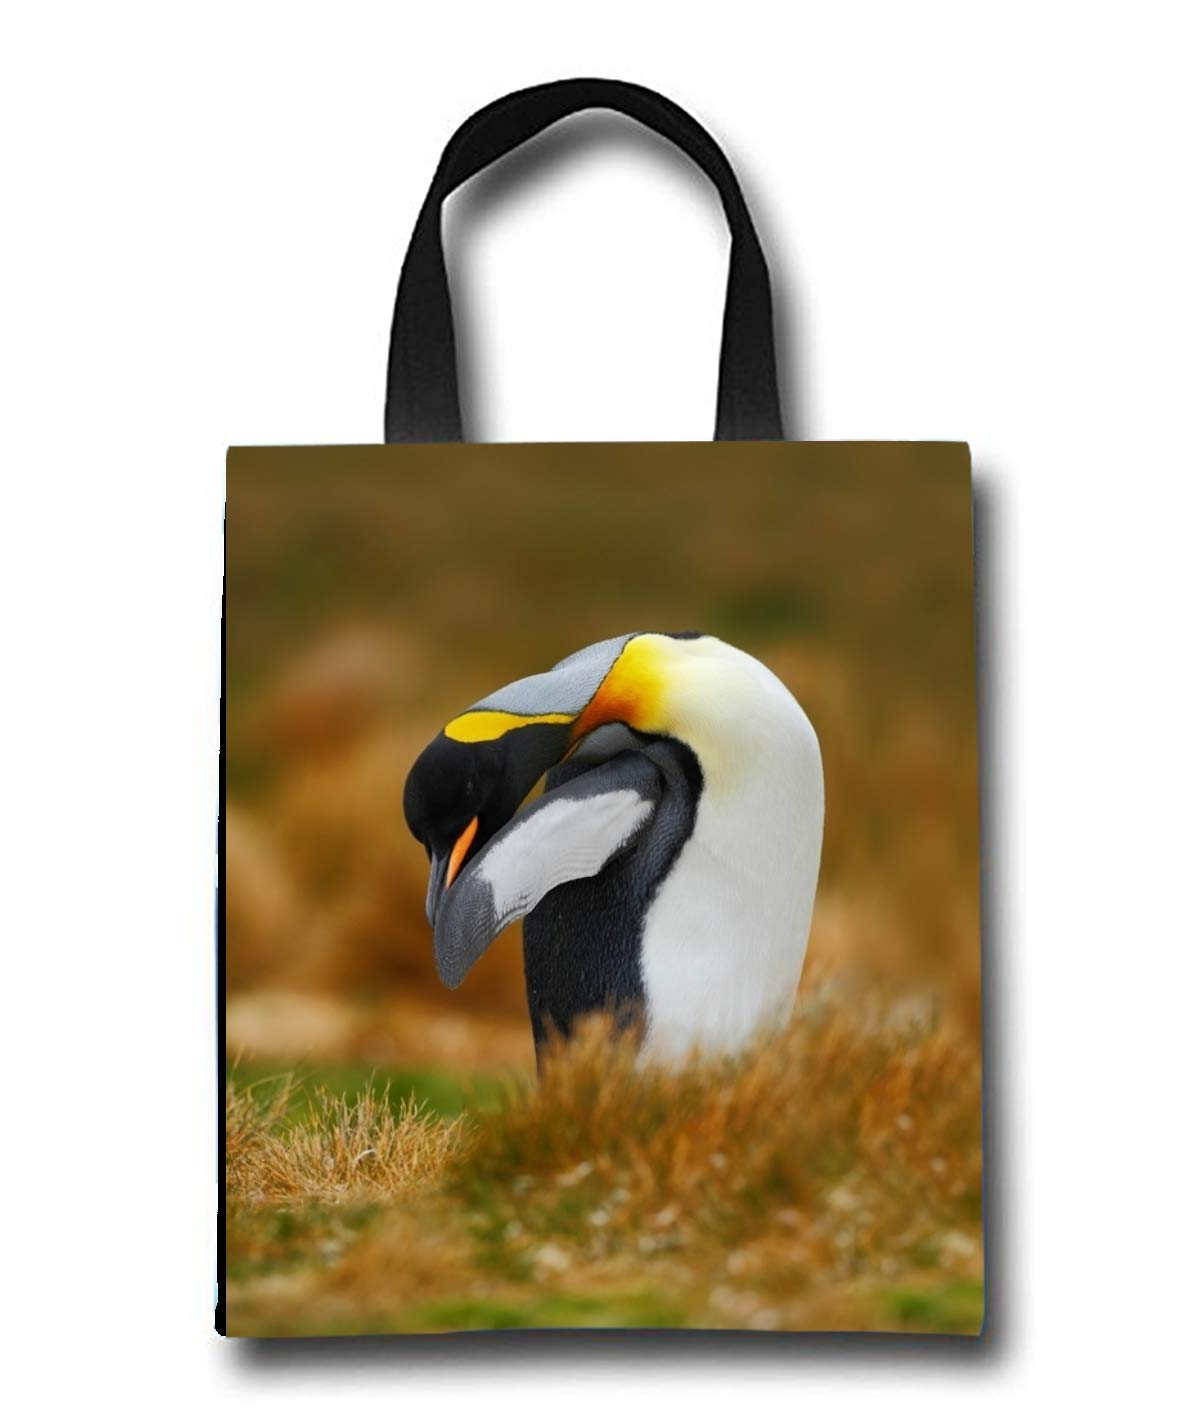 Cute Penguin Beach Tote Bag - Toy Tote Bag - Large Lightweight Market, Grocery & Picnic